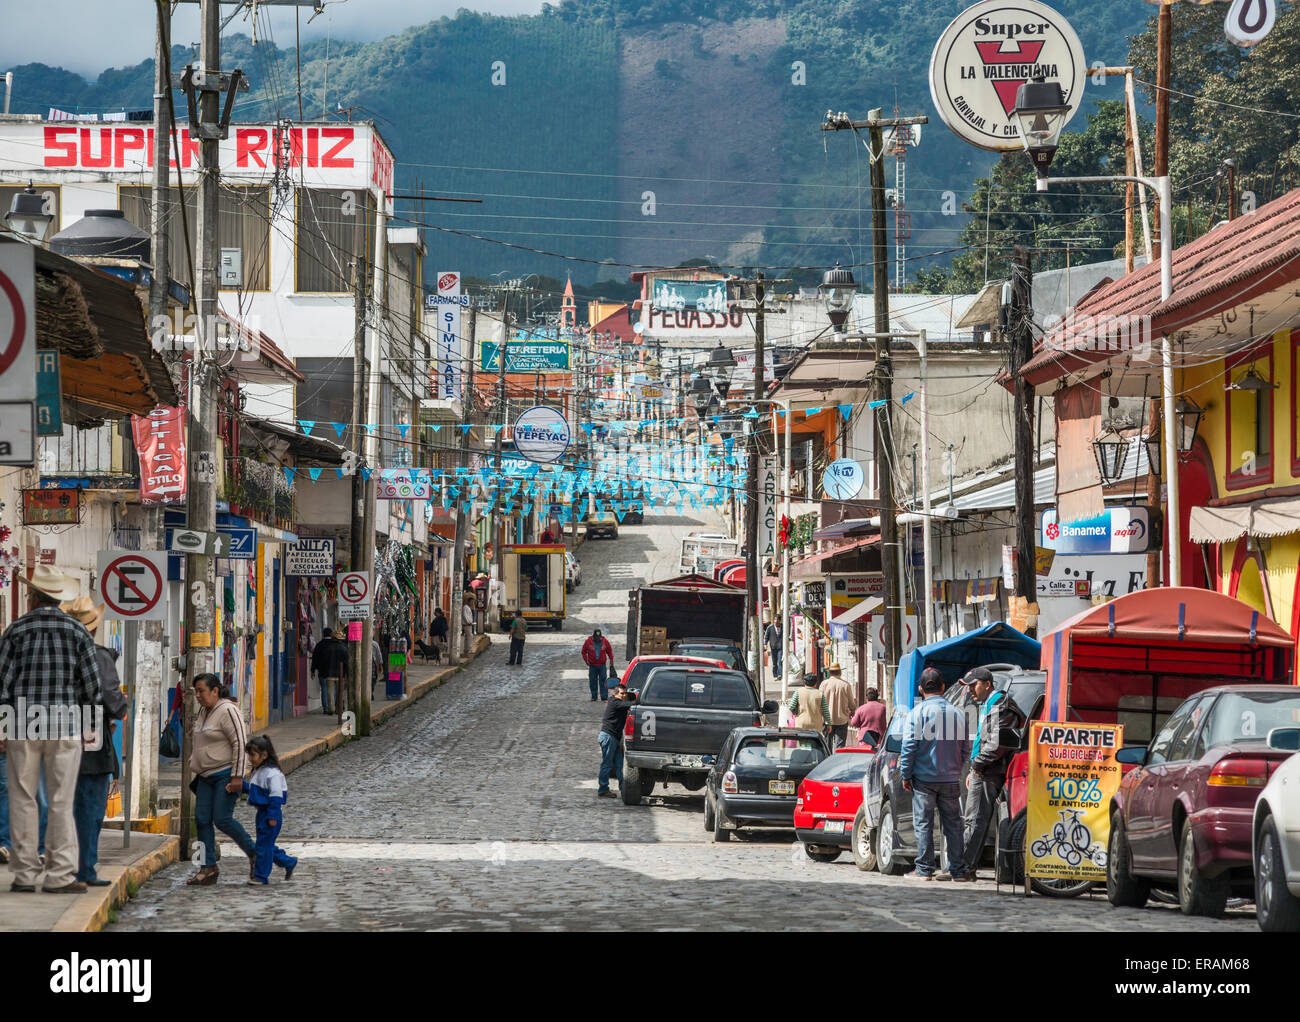 Avenida Nicholas Bravo, cobbled street with utility cables overhead, decorated with pennants, in Coscomatepec, Veracruz, - Stock Image